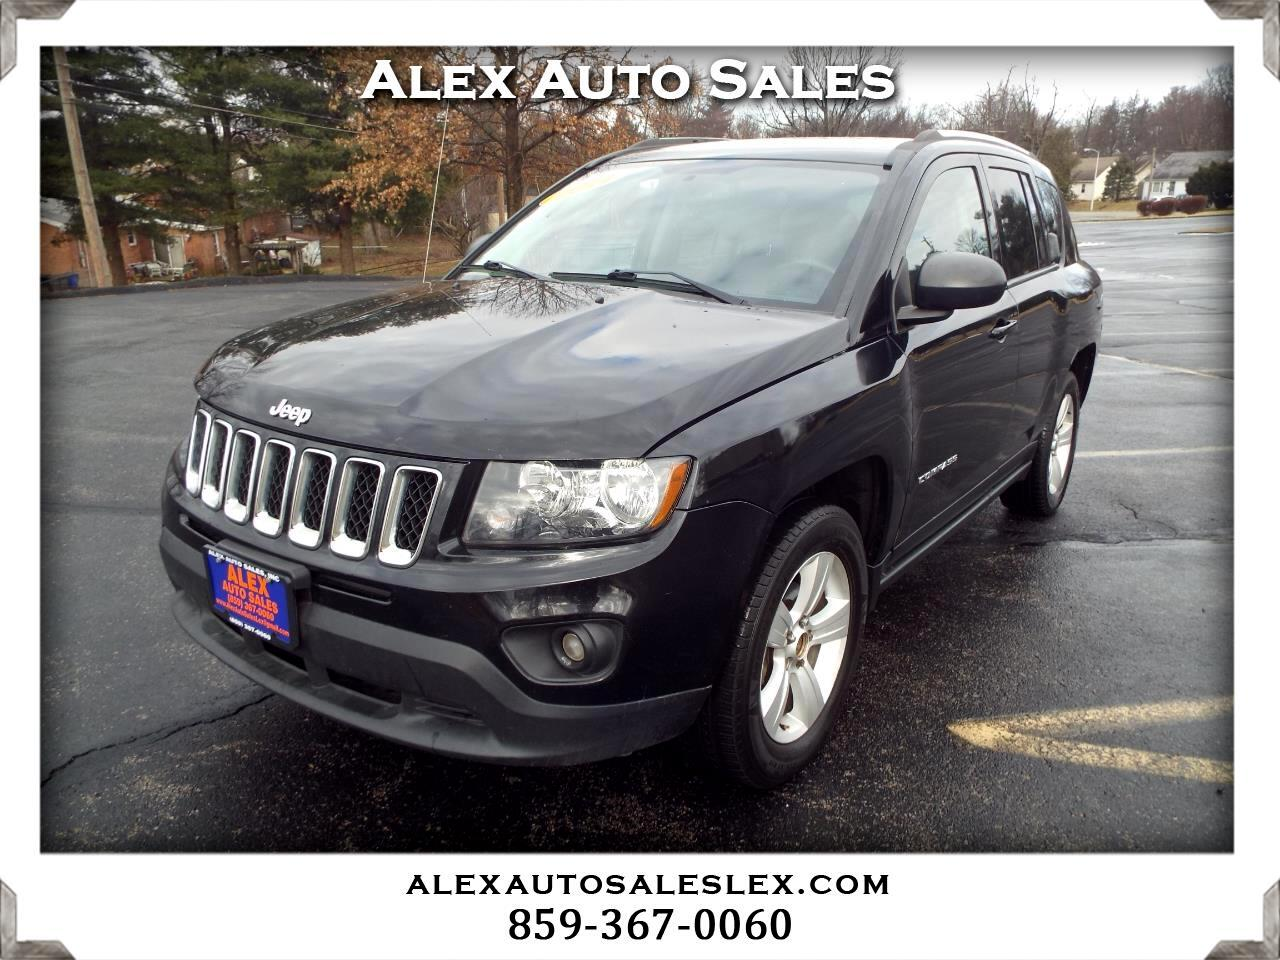 Buy Here Pay Here Lexington Ky >> Buy Here Pay Here 2014 Jeep Compass For Sale In Lexington Ky 40505